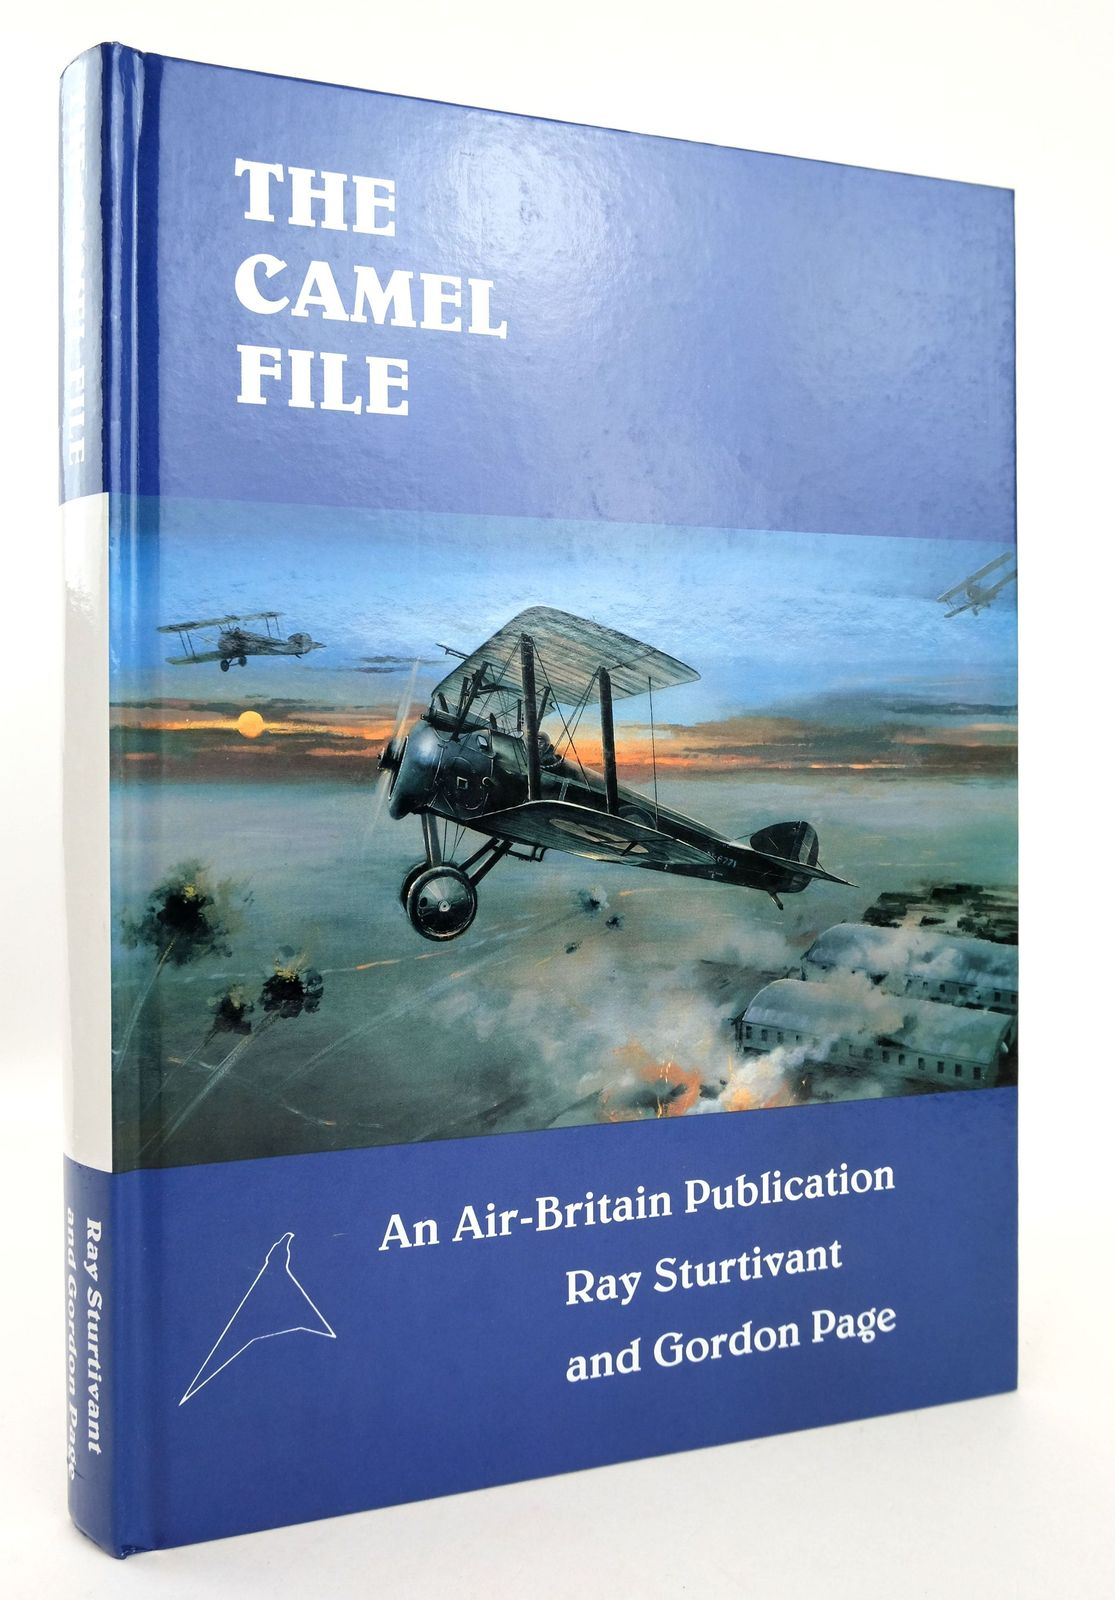 Photo of THE CAMEL FILE written by Sturtivant, Ray Page, Gordon published by Air-Britain (STOCK CODE: 1819150)  for sale by Stella & Rose's Books